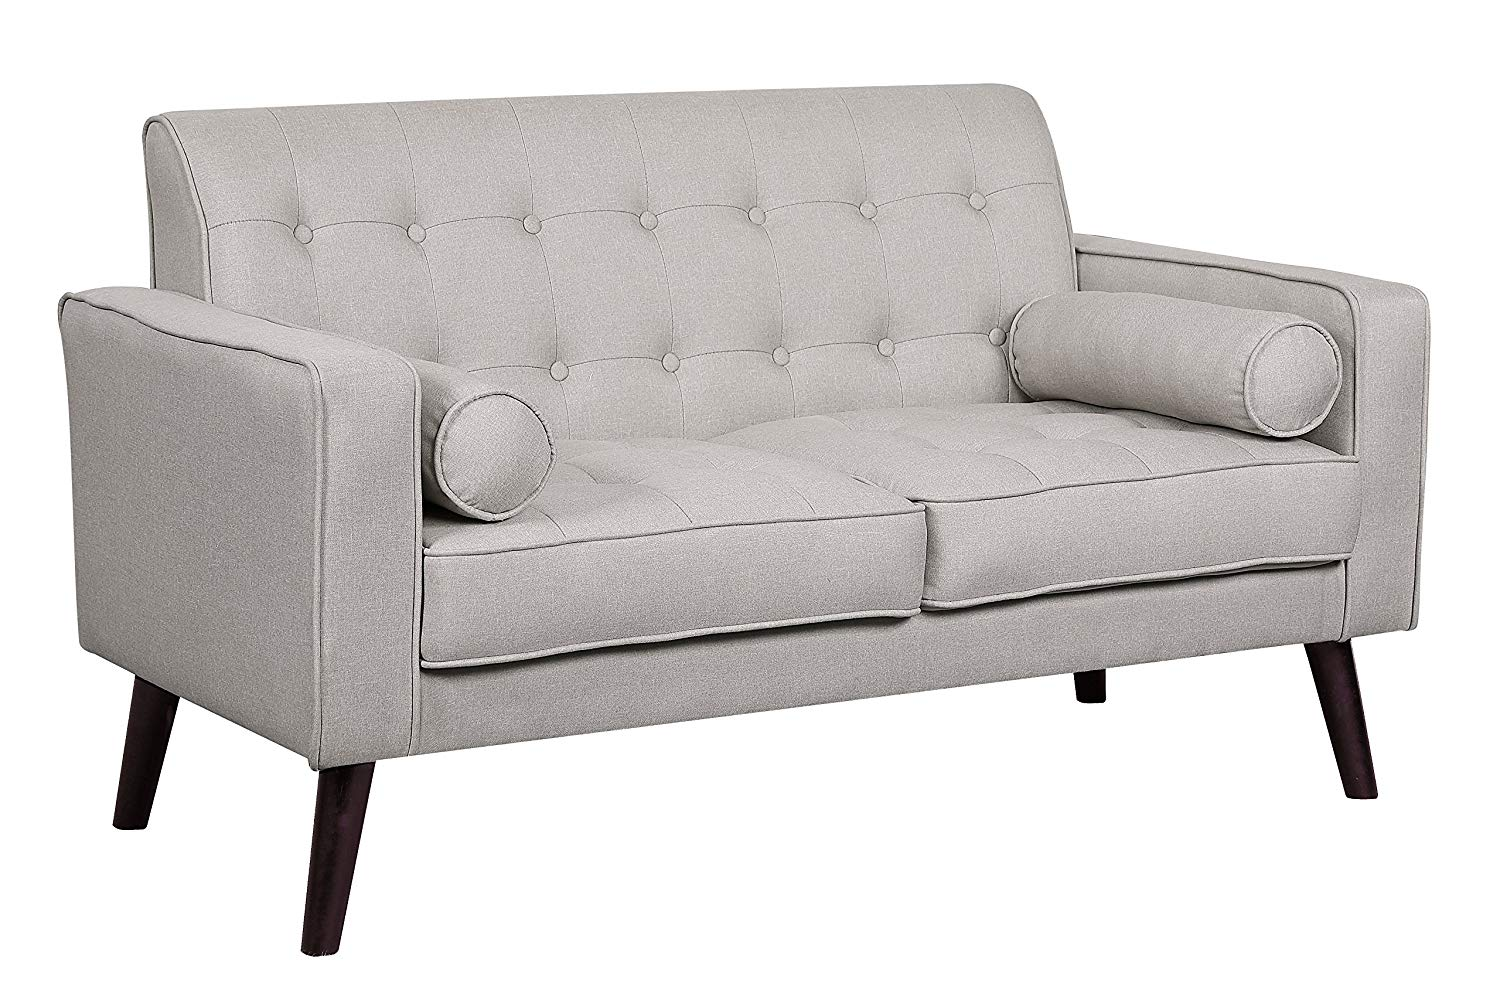 Container Furniture Direct S5304-L Valadez Linen Upholstered Tufted Mid-Century Modern Loveseat with Bolsters, Beige/Light Grey